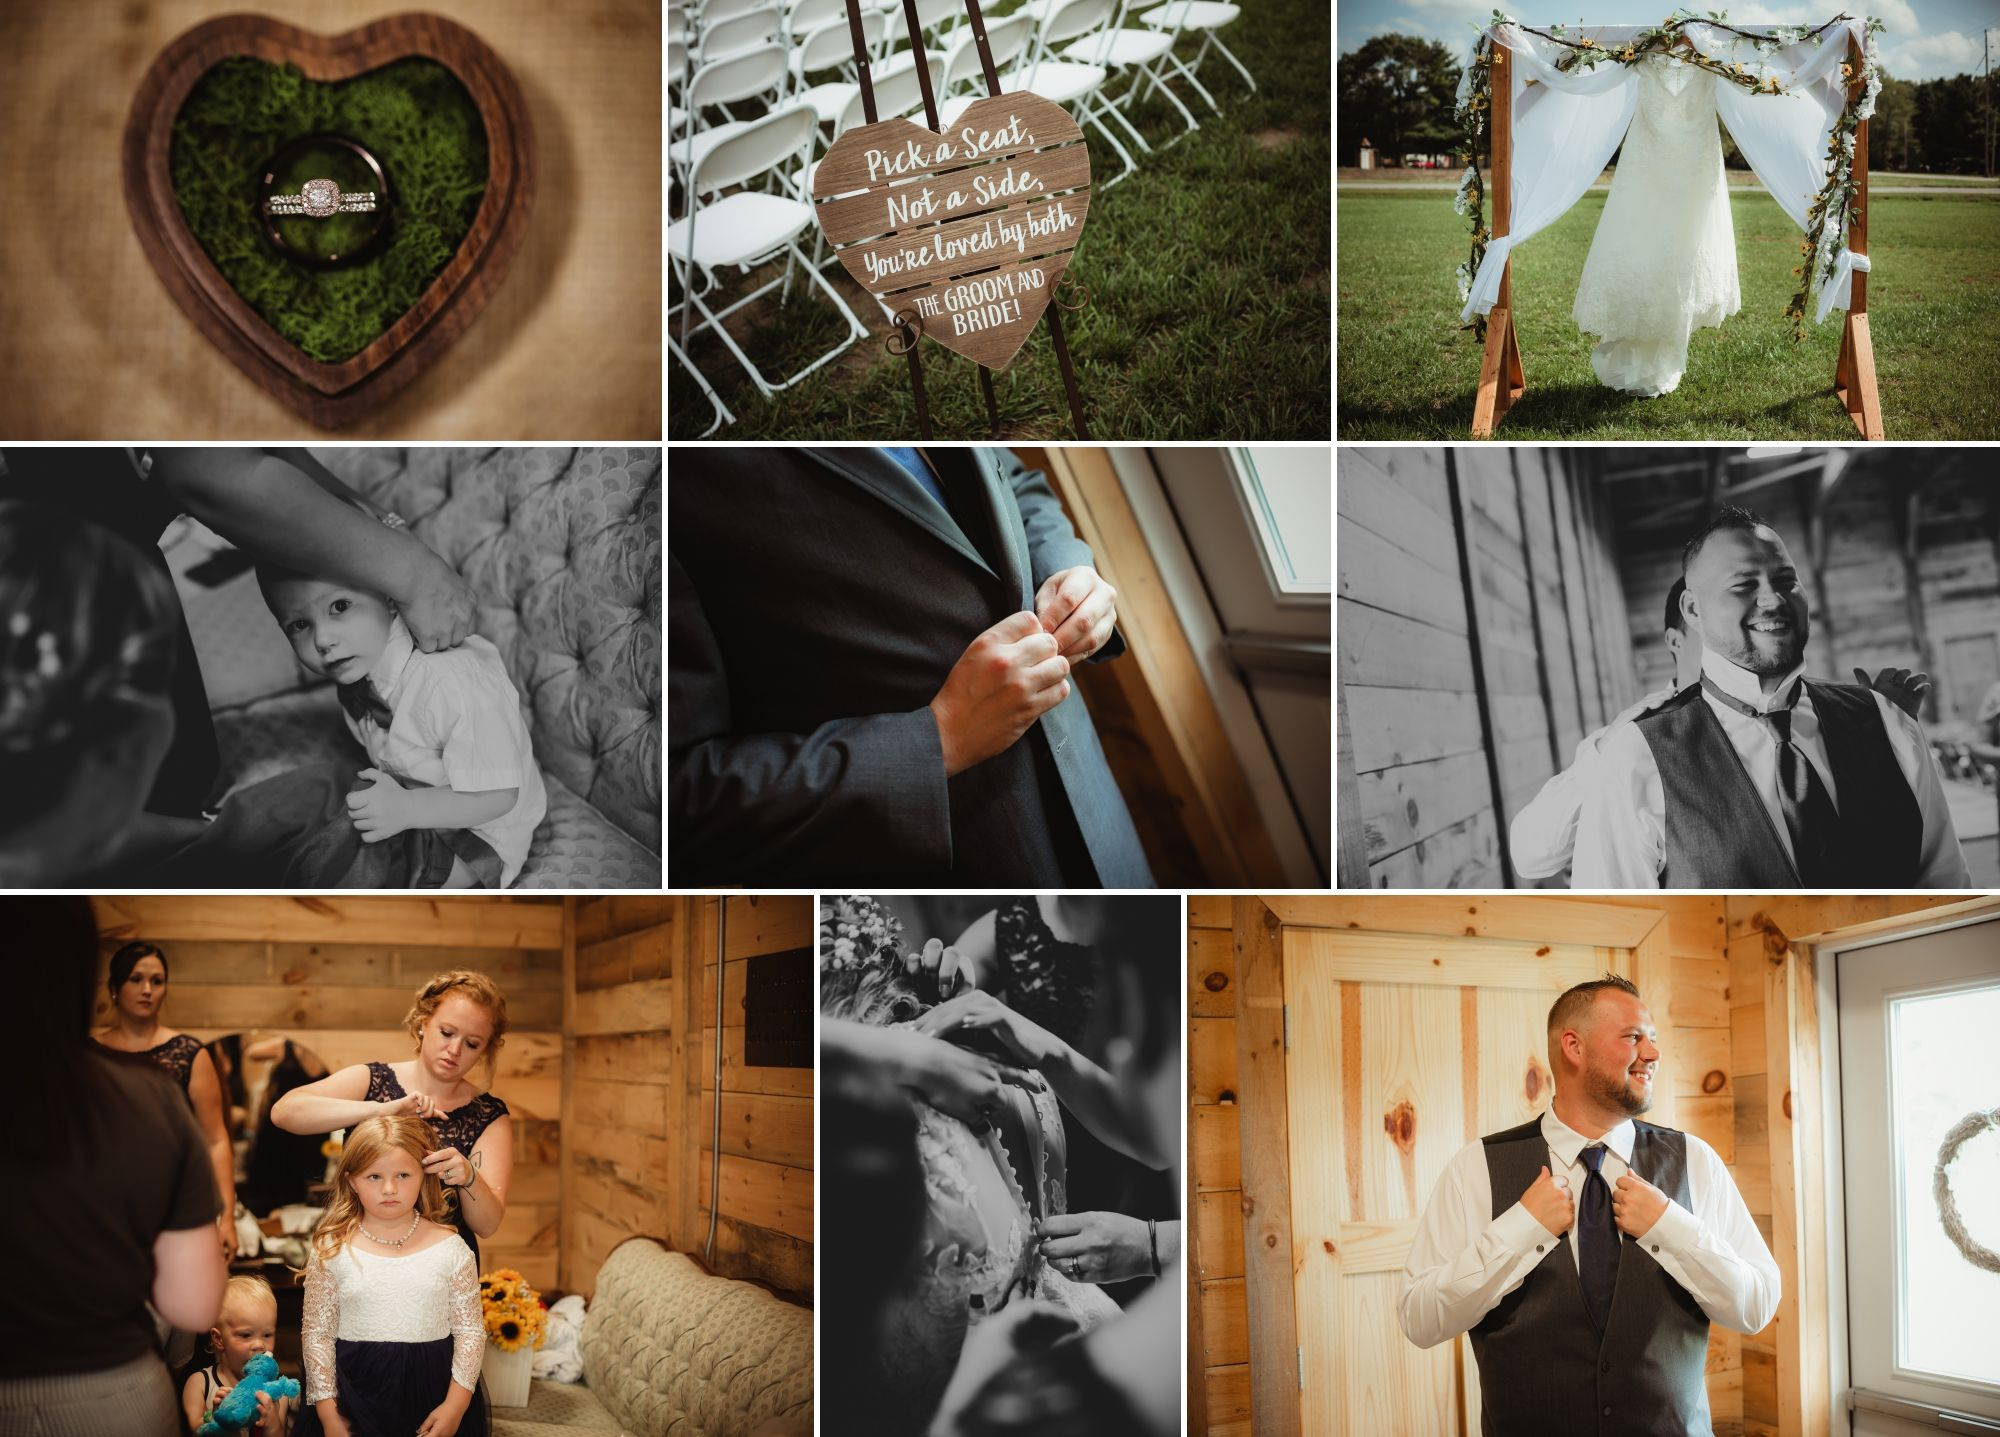 Collage of wedding rings, wedding dress, and bride and groom getting ready.